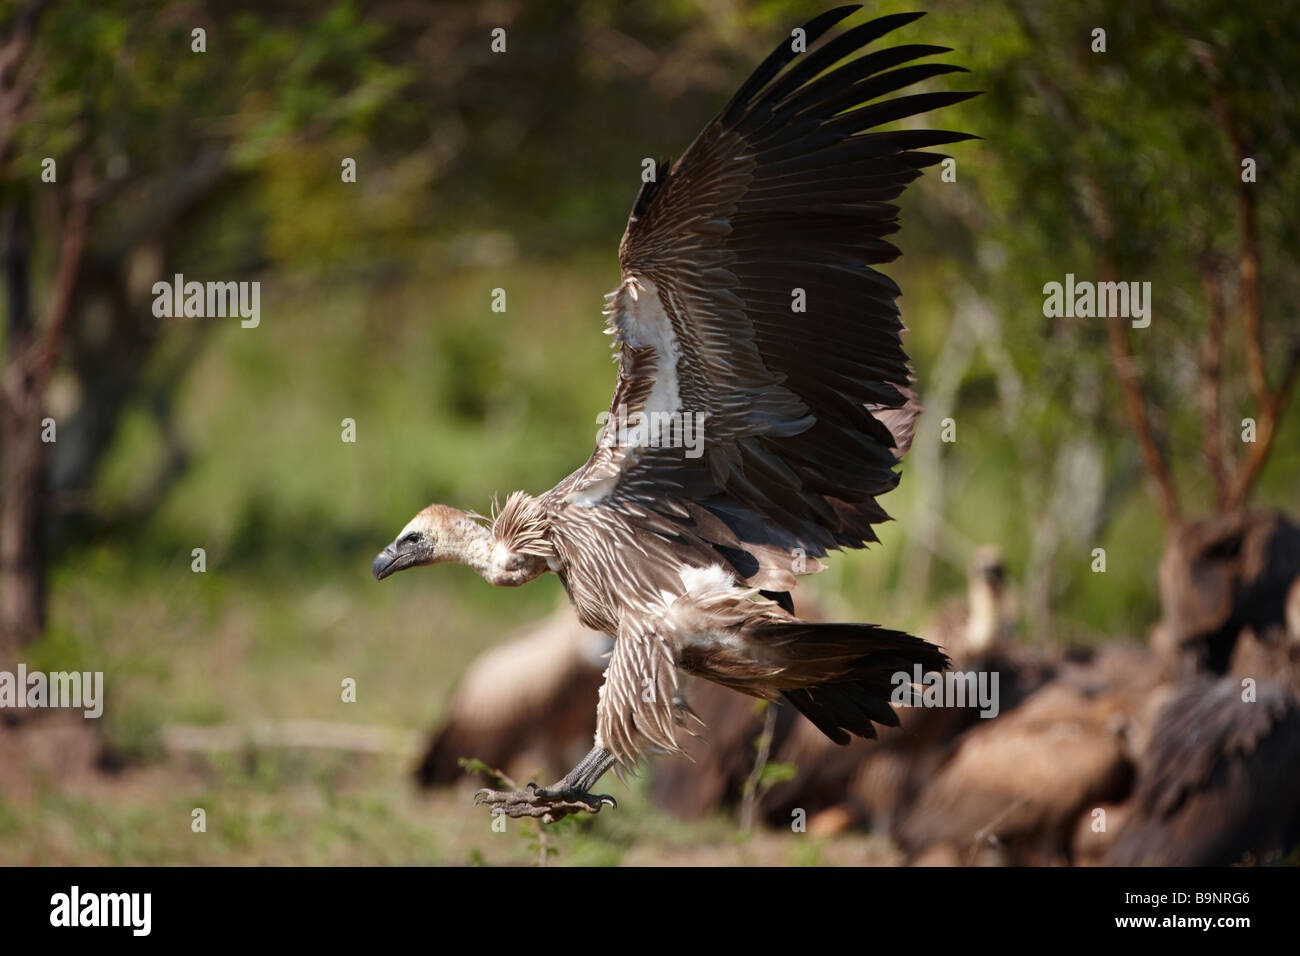 white-backed vulture landing to feed from a carcass, Kruger National Park, South Africa - Stock Image